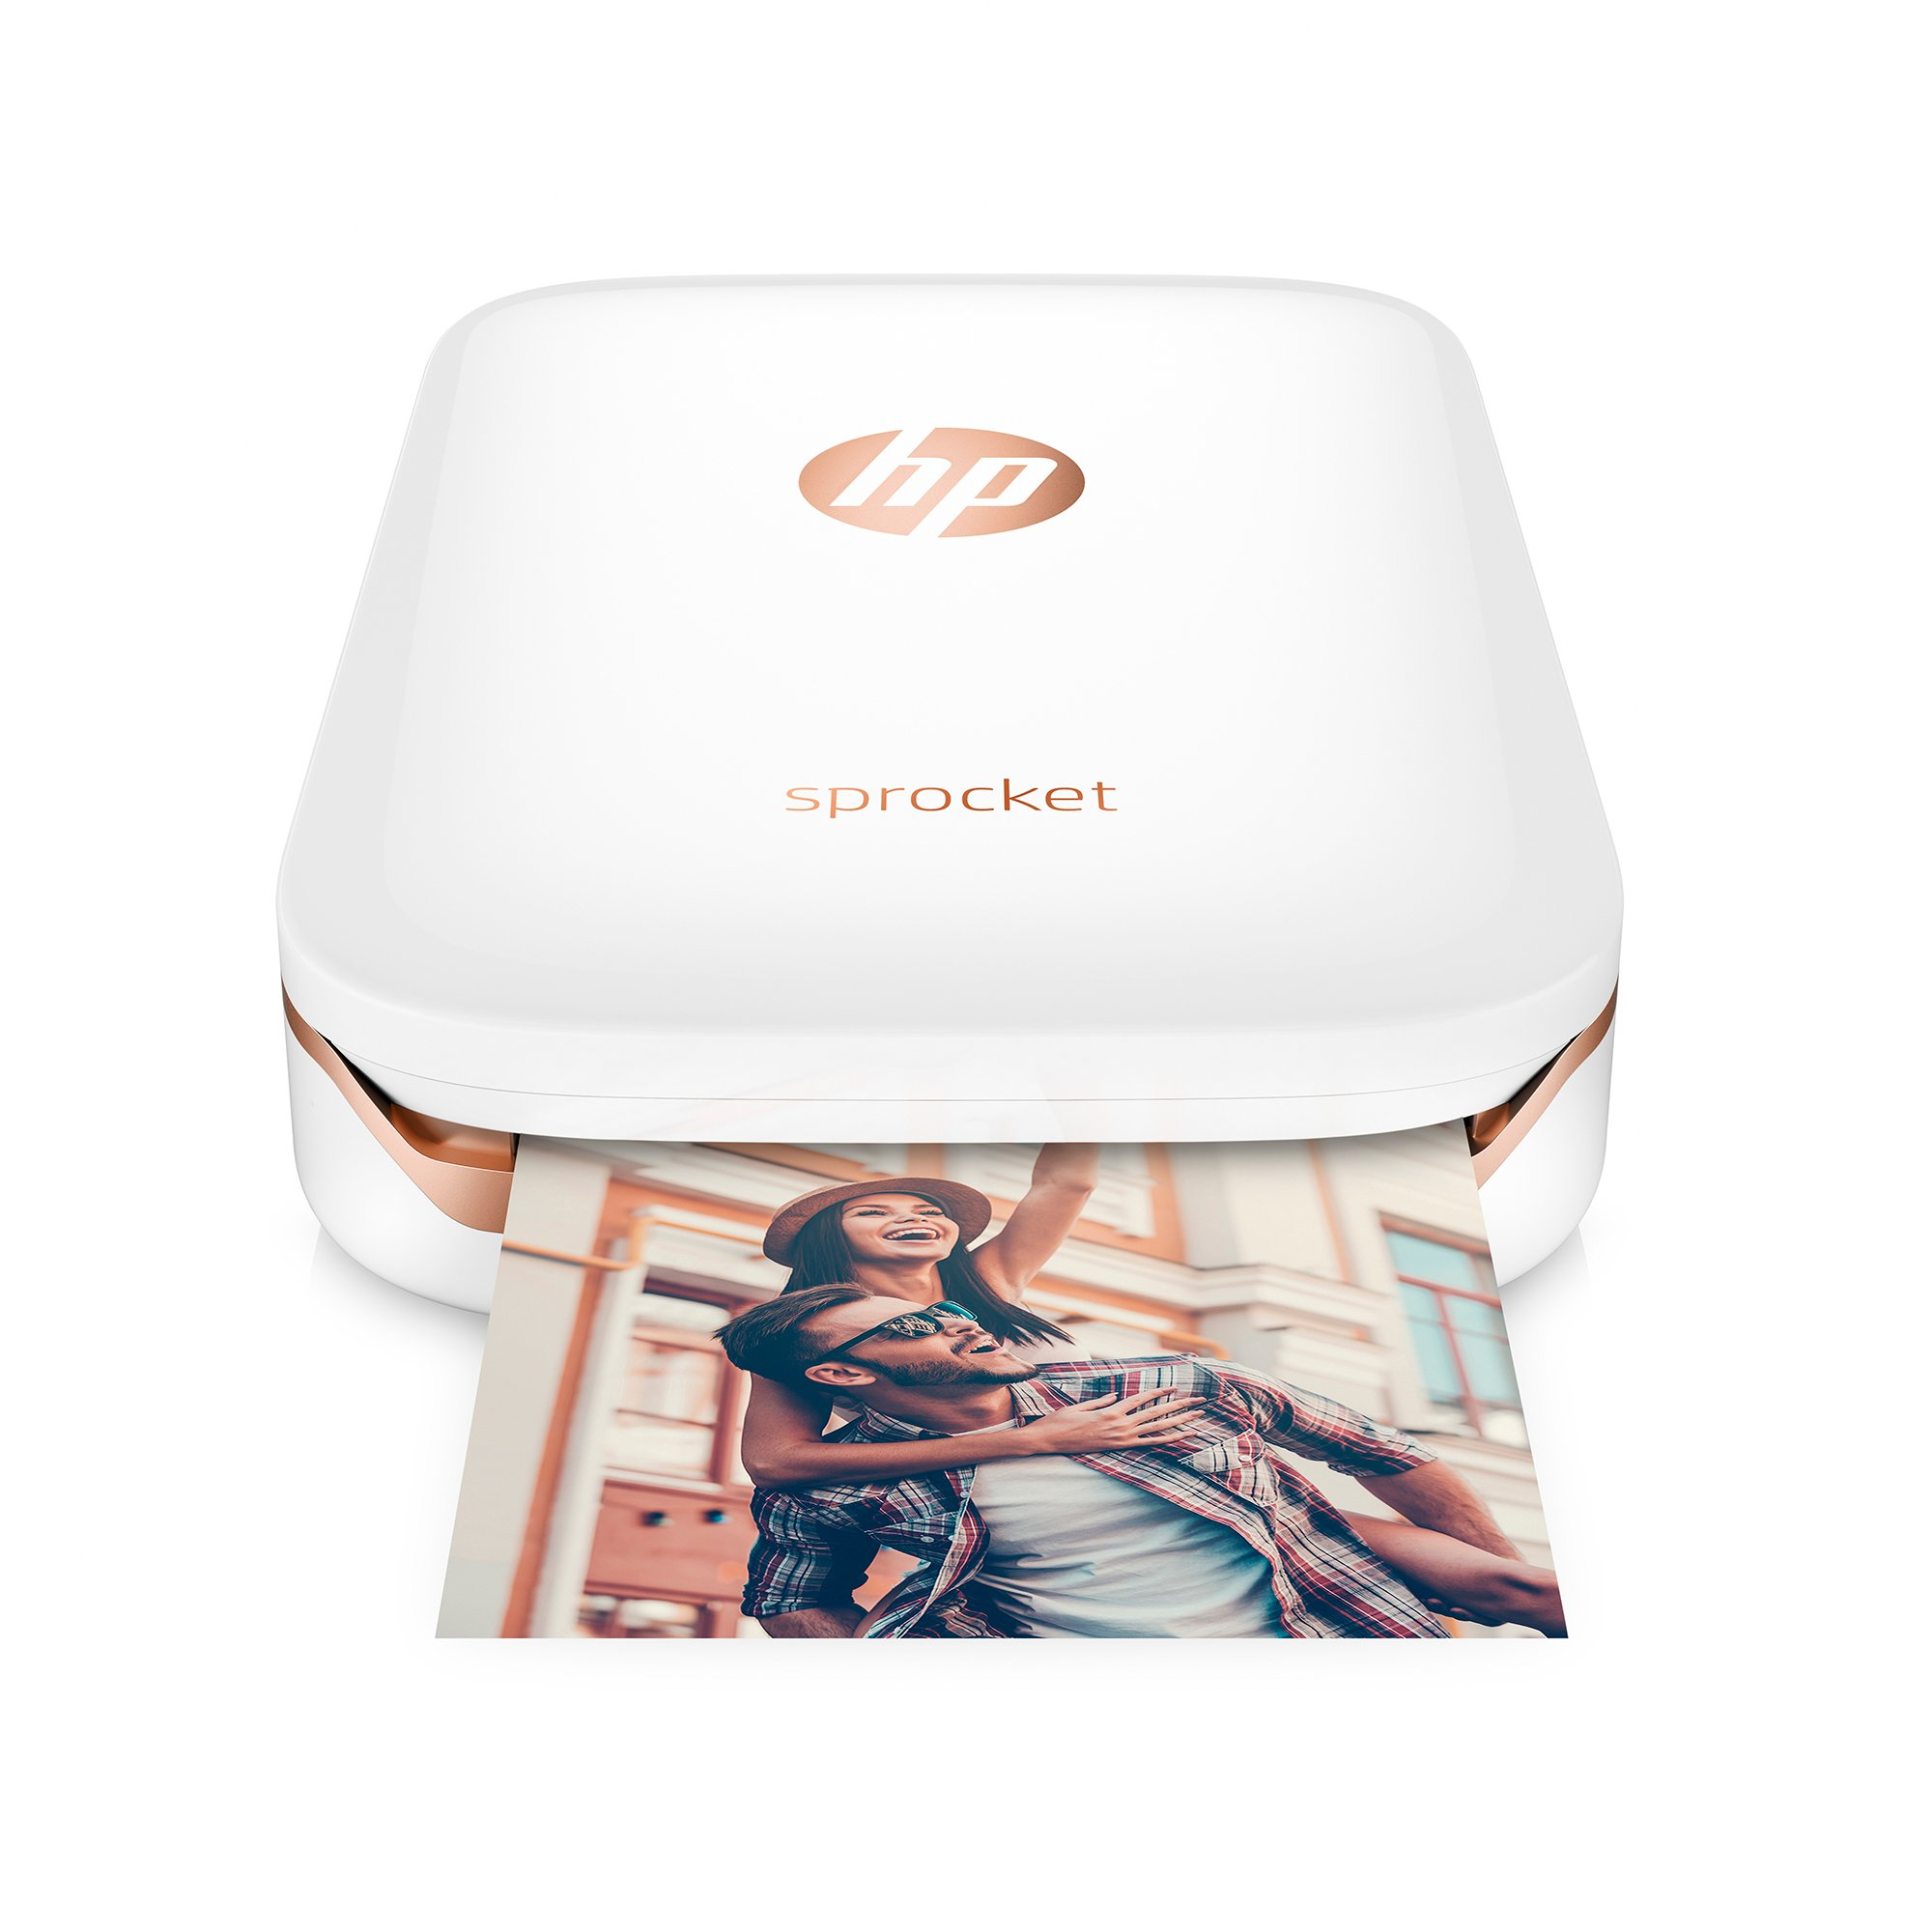 HP Sprocket Portable Photo Printer, X7N07A, Print Social Media Photos on 2x3 Sticky-Backed Paper - White by HP